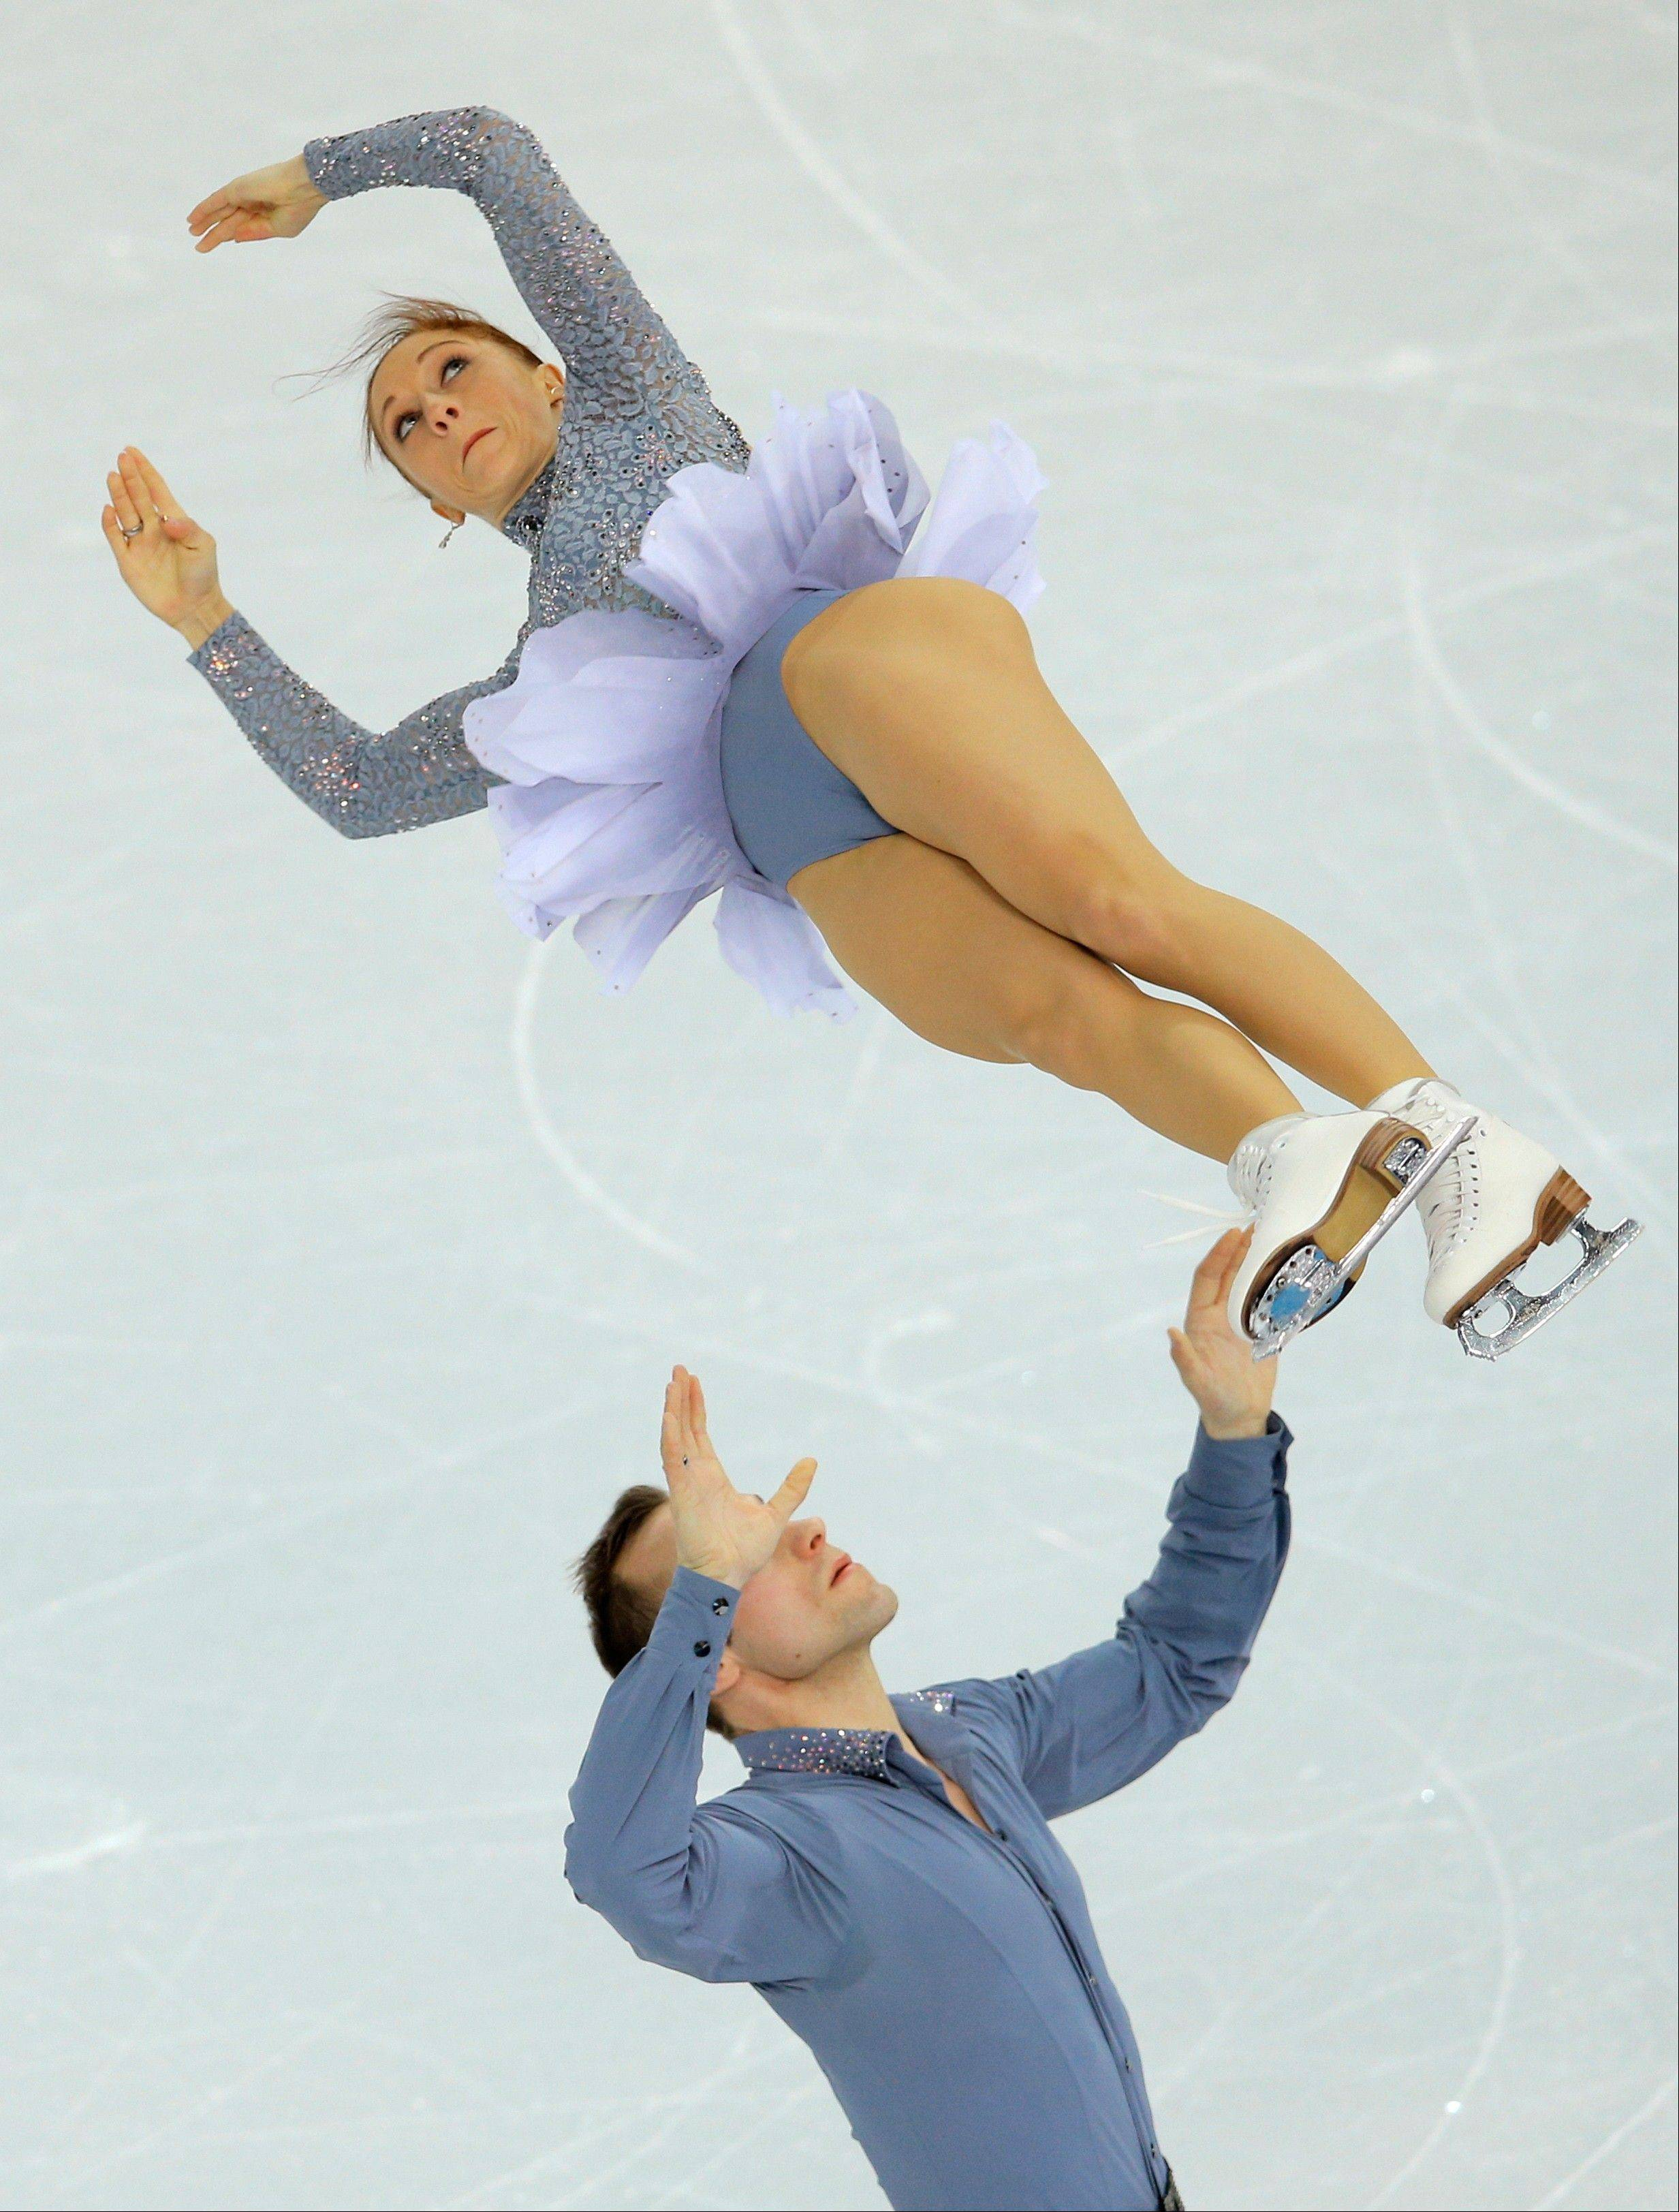 Maylin Wende and Daniel Wende of Germany compete in the team pairs short program figure skating competition at the Iceberg Skating Palace during the 2014 Winter Olympics.